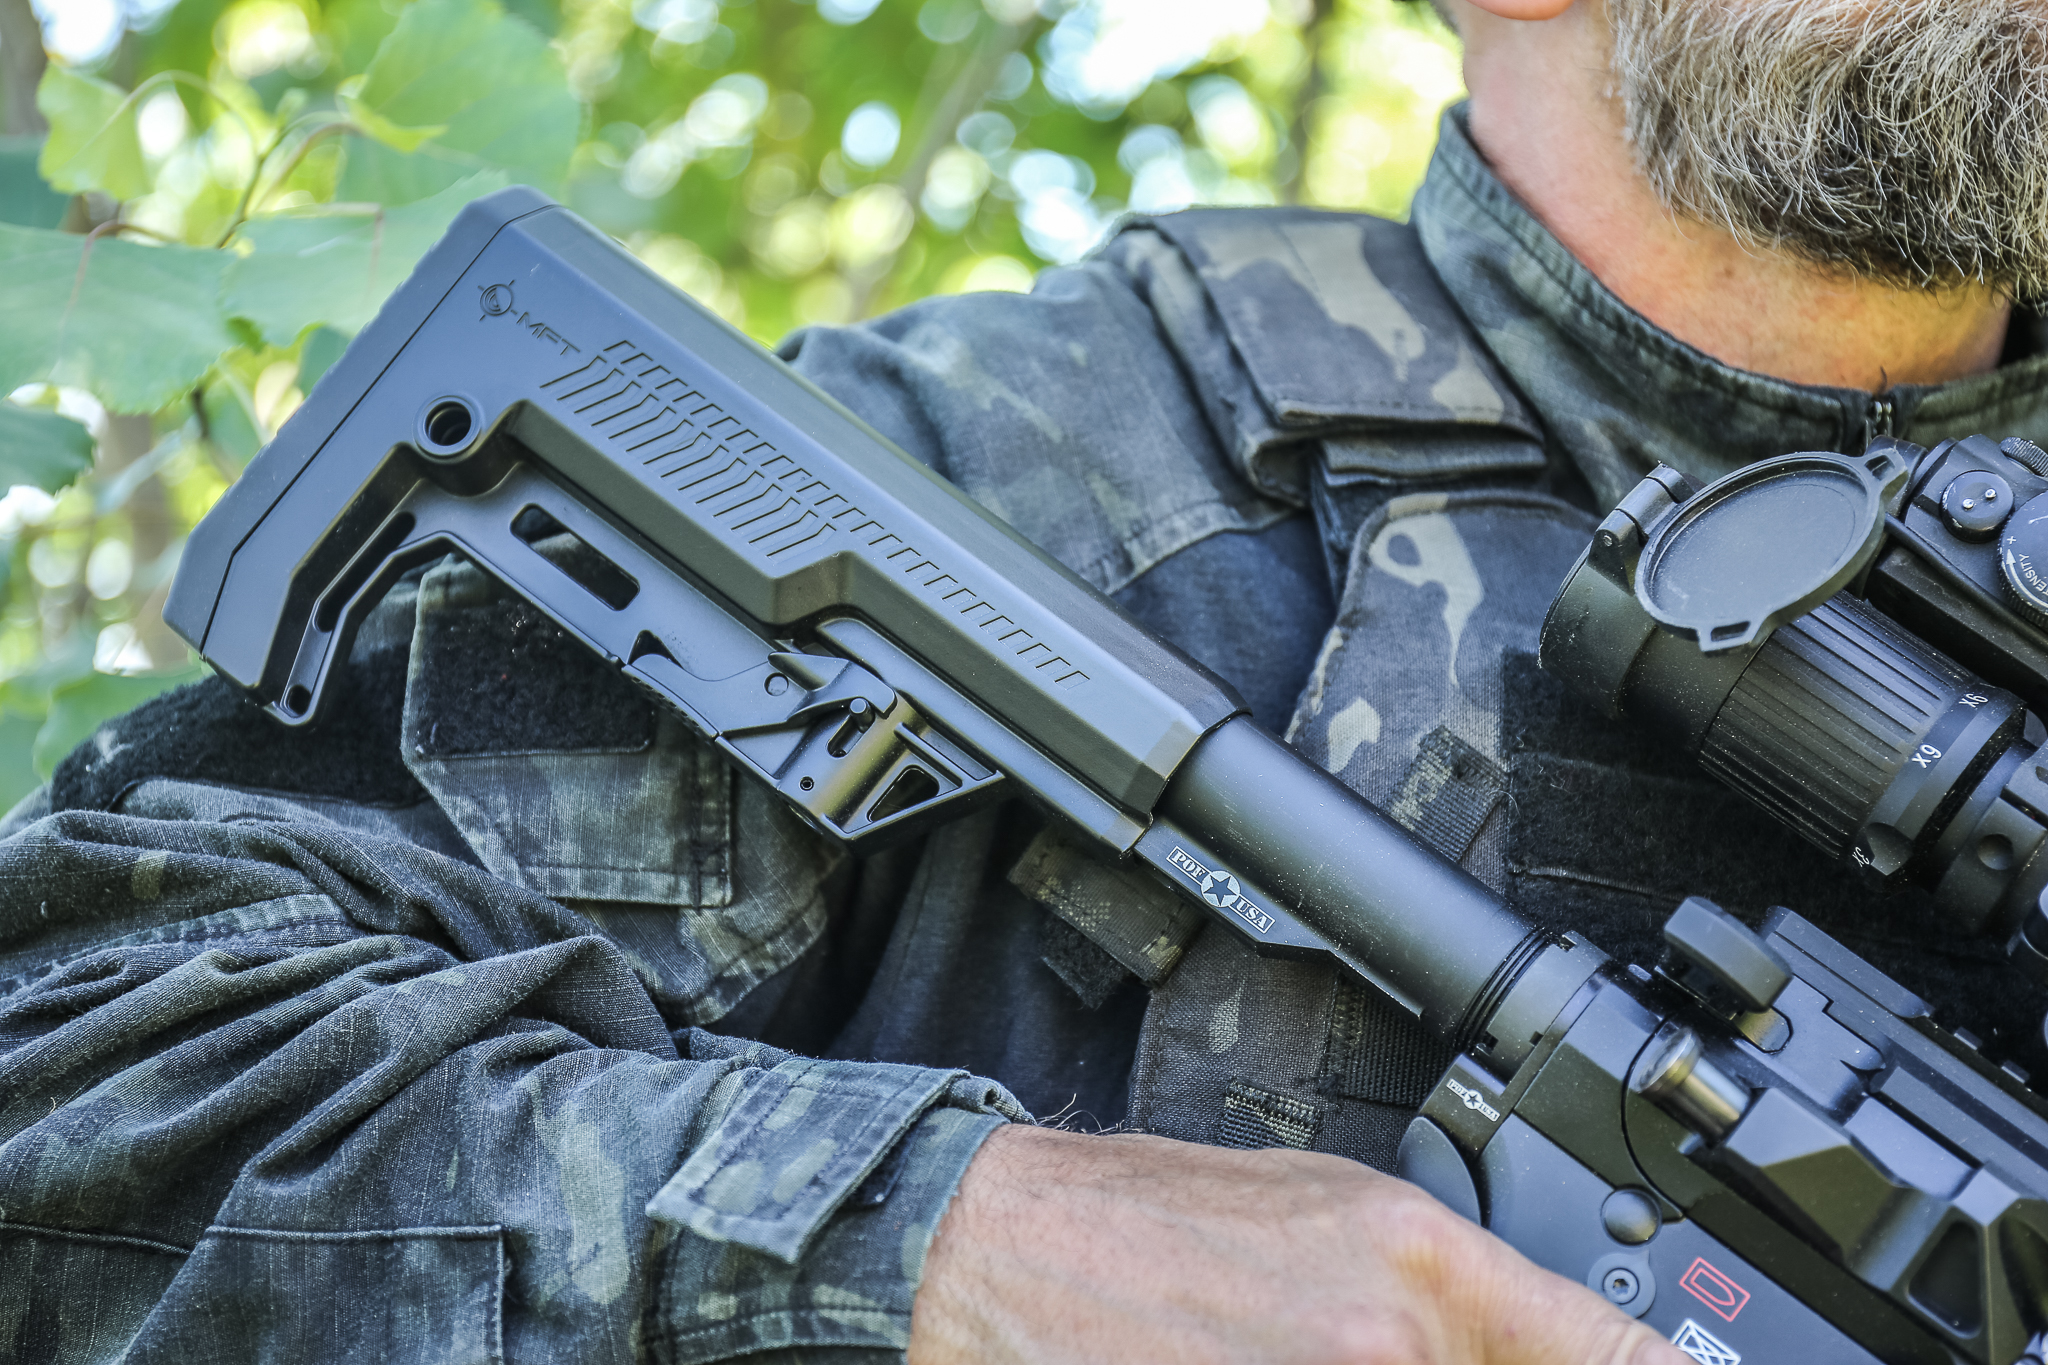 Mission First Tactical (MFT) Introduces Battlelink Extreme Duty Minimalist Stock